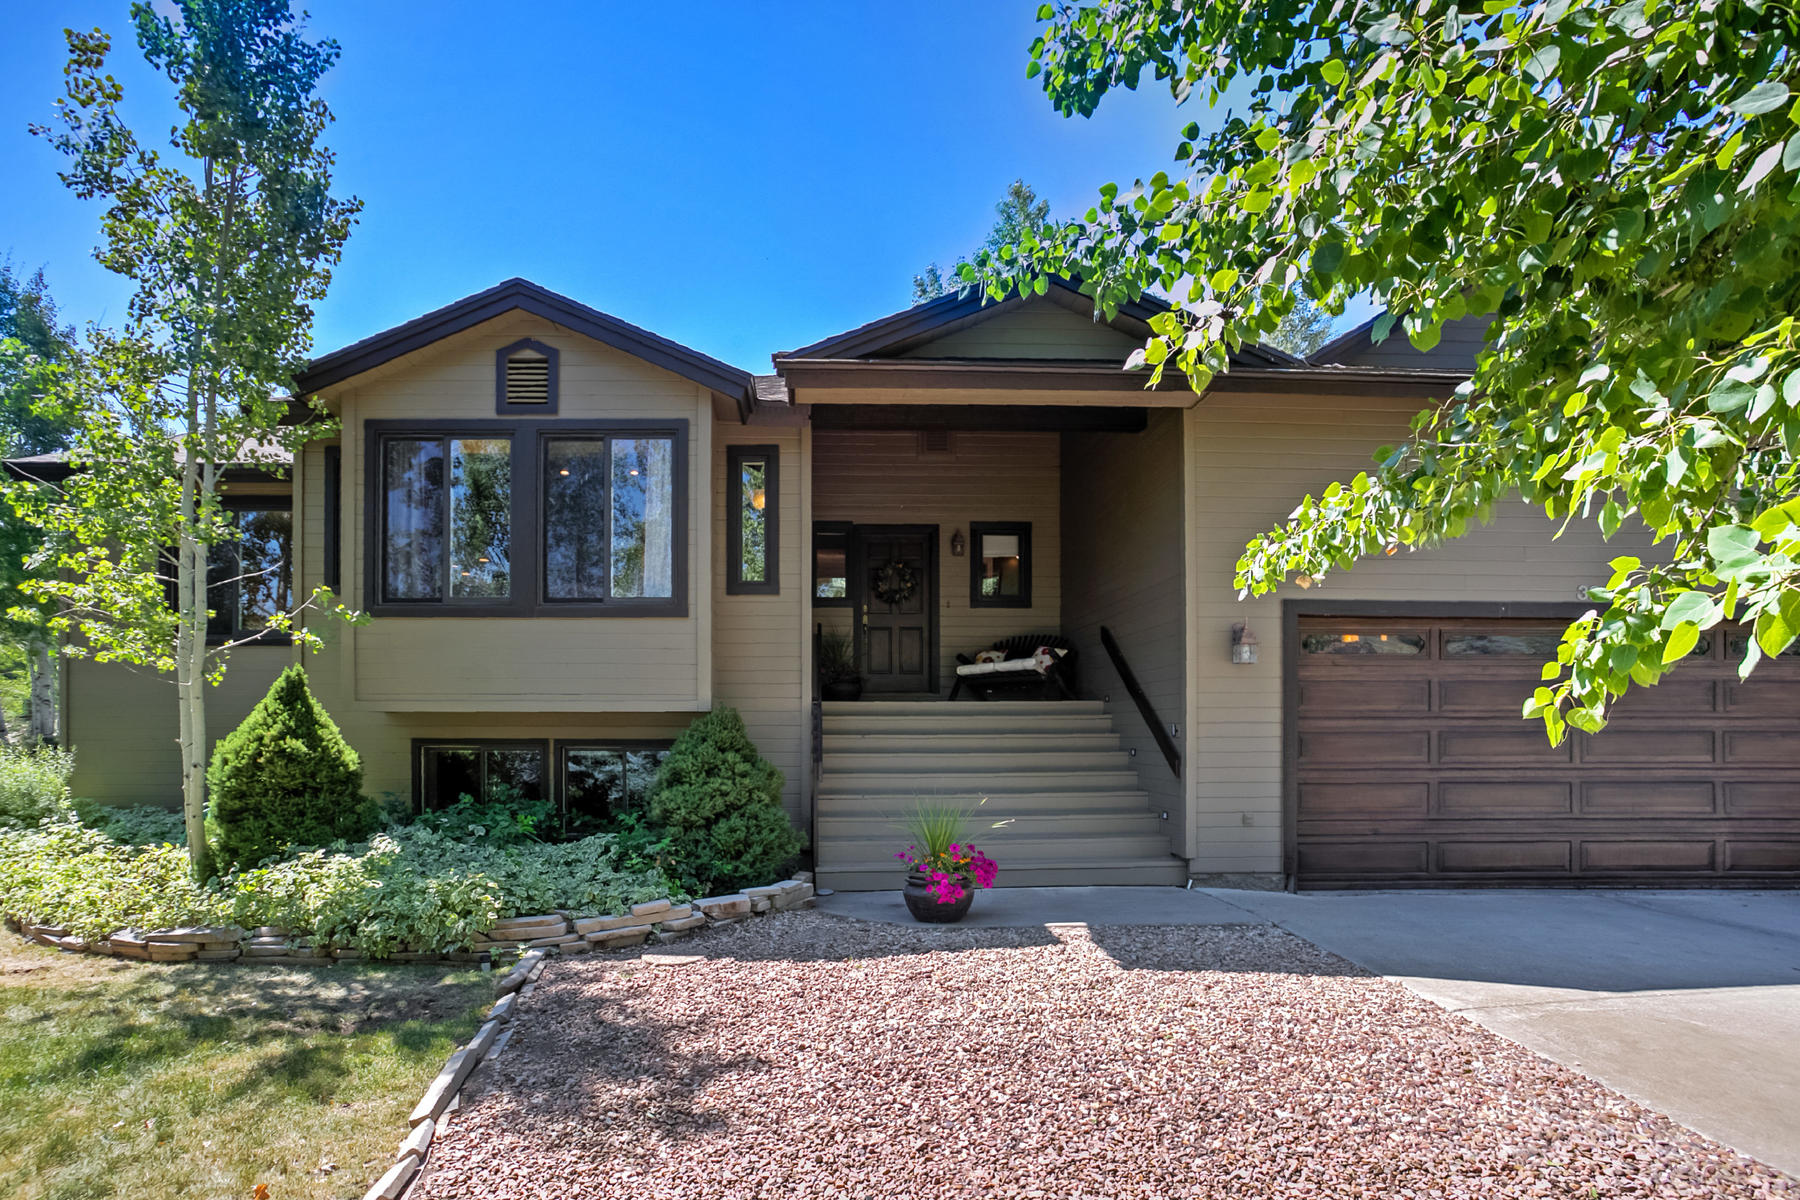 Single Family Home for Sale at QuintessentialFamily Home 3865 Lariat Rd Park City, Utah 84098 United States